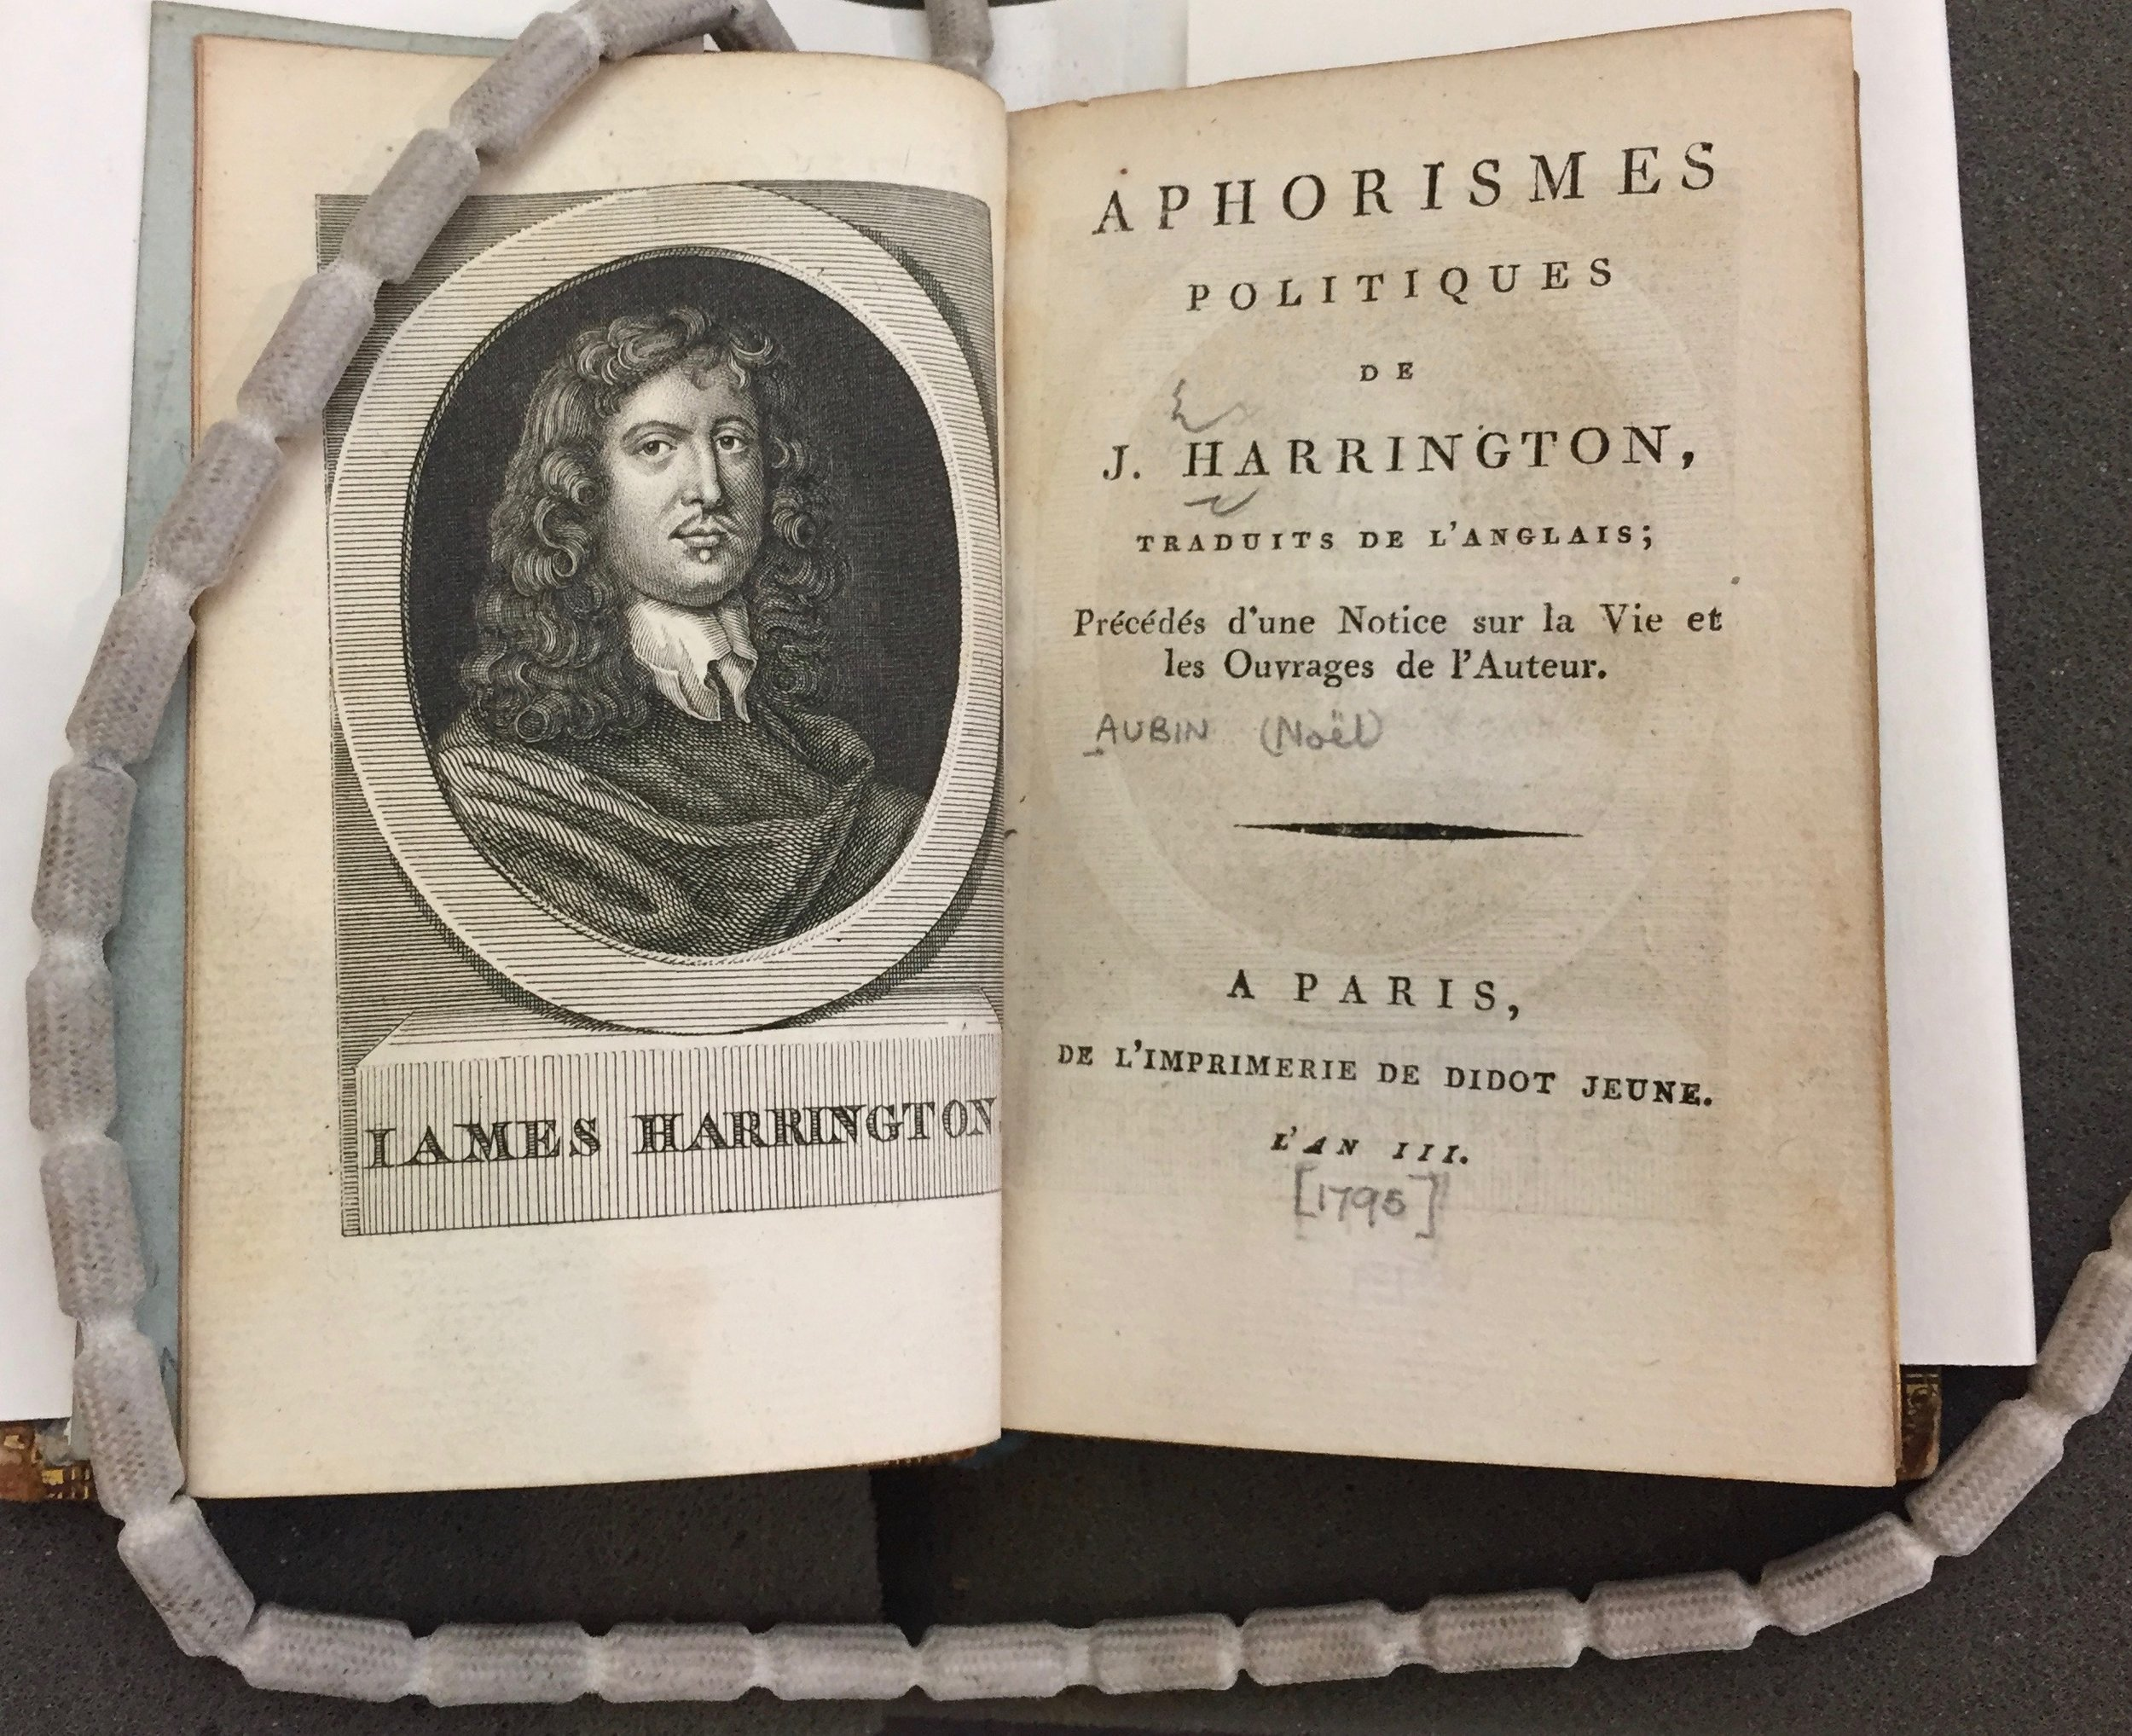 A French translation of Harrington's aphoristic works from the revolutionary period. Brotherton Library, Leeds, Anglo-French 2 1795 HAR. Reproduced with permission.